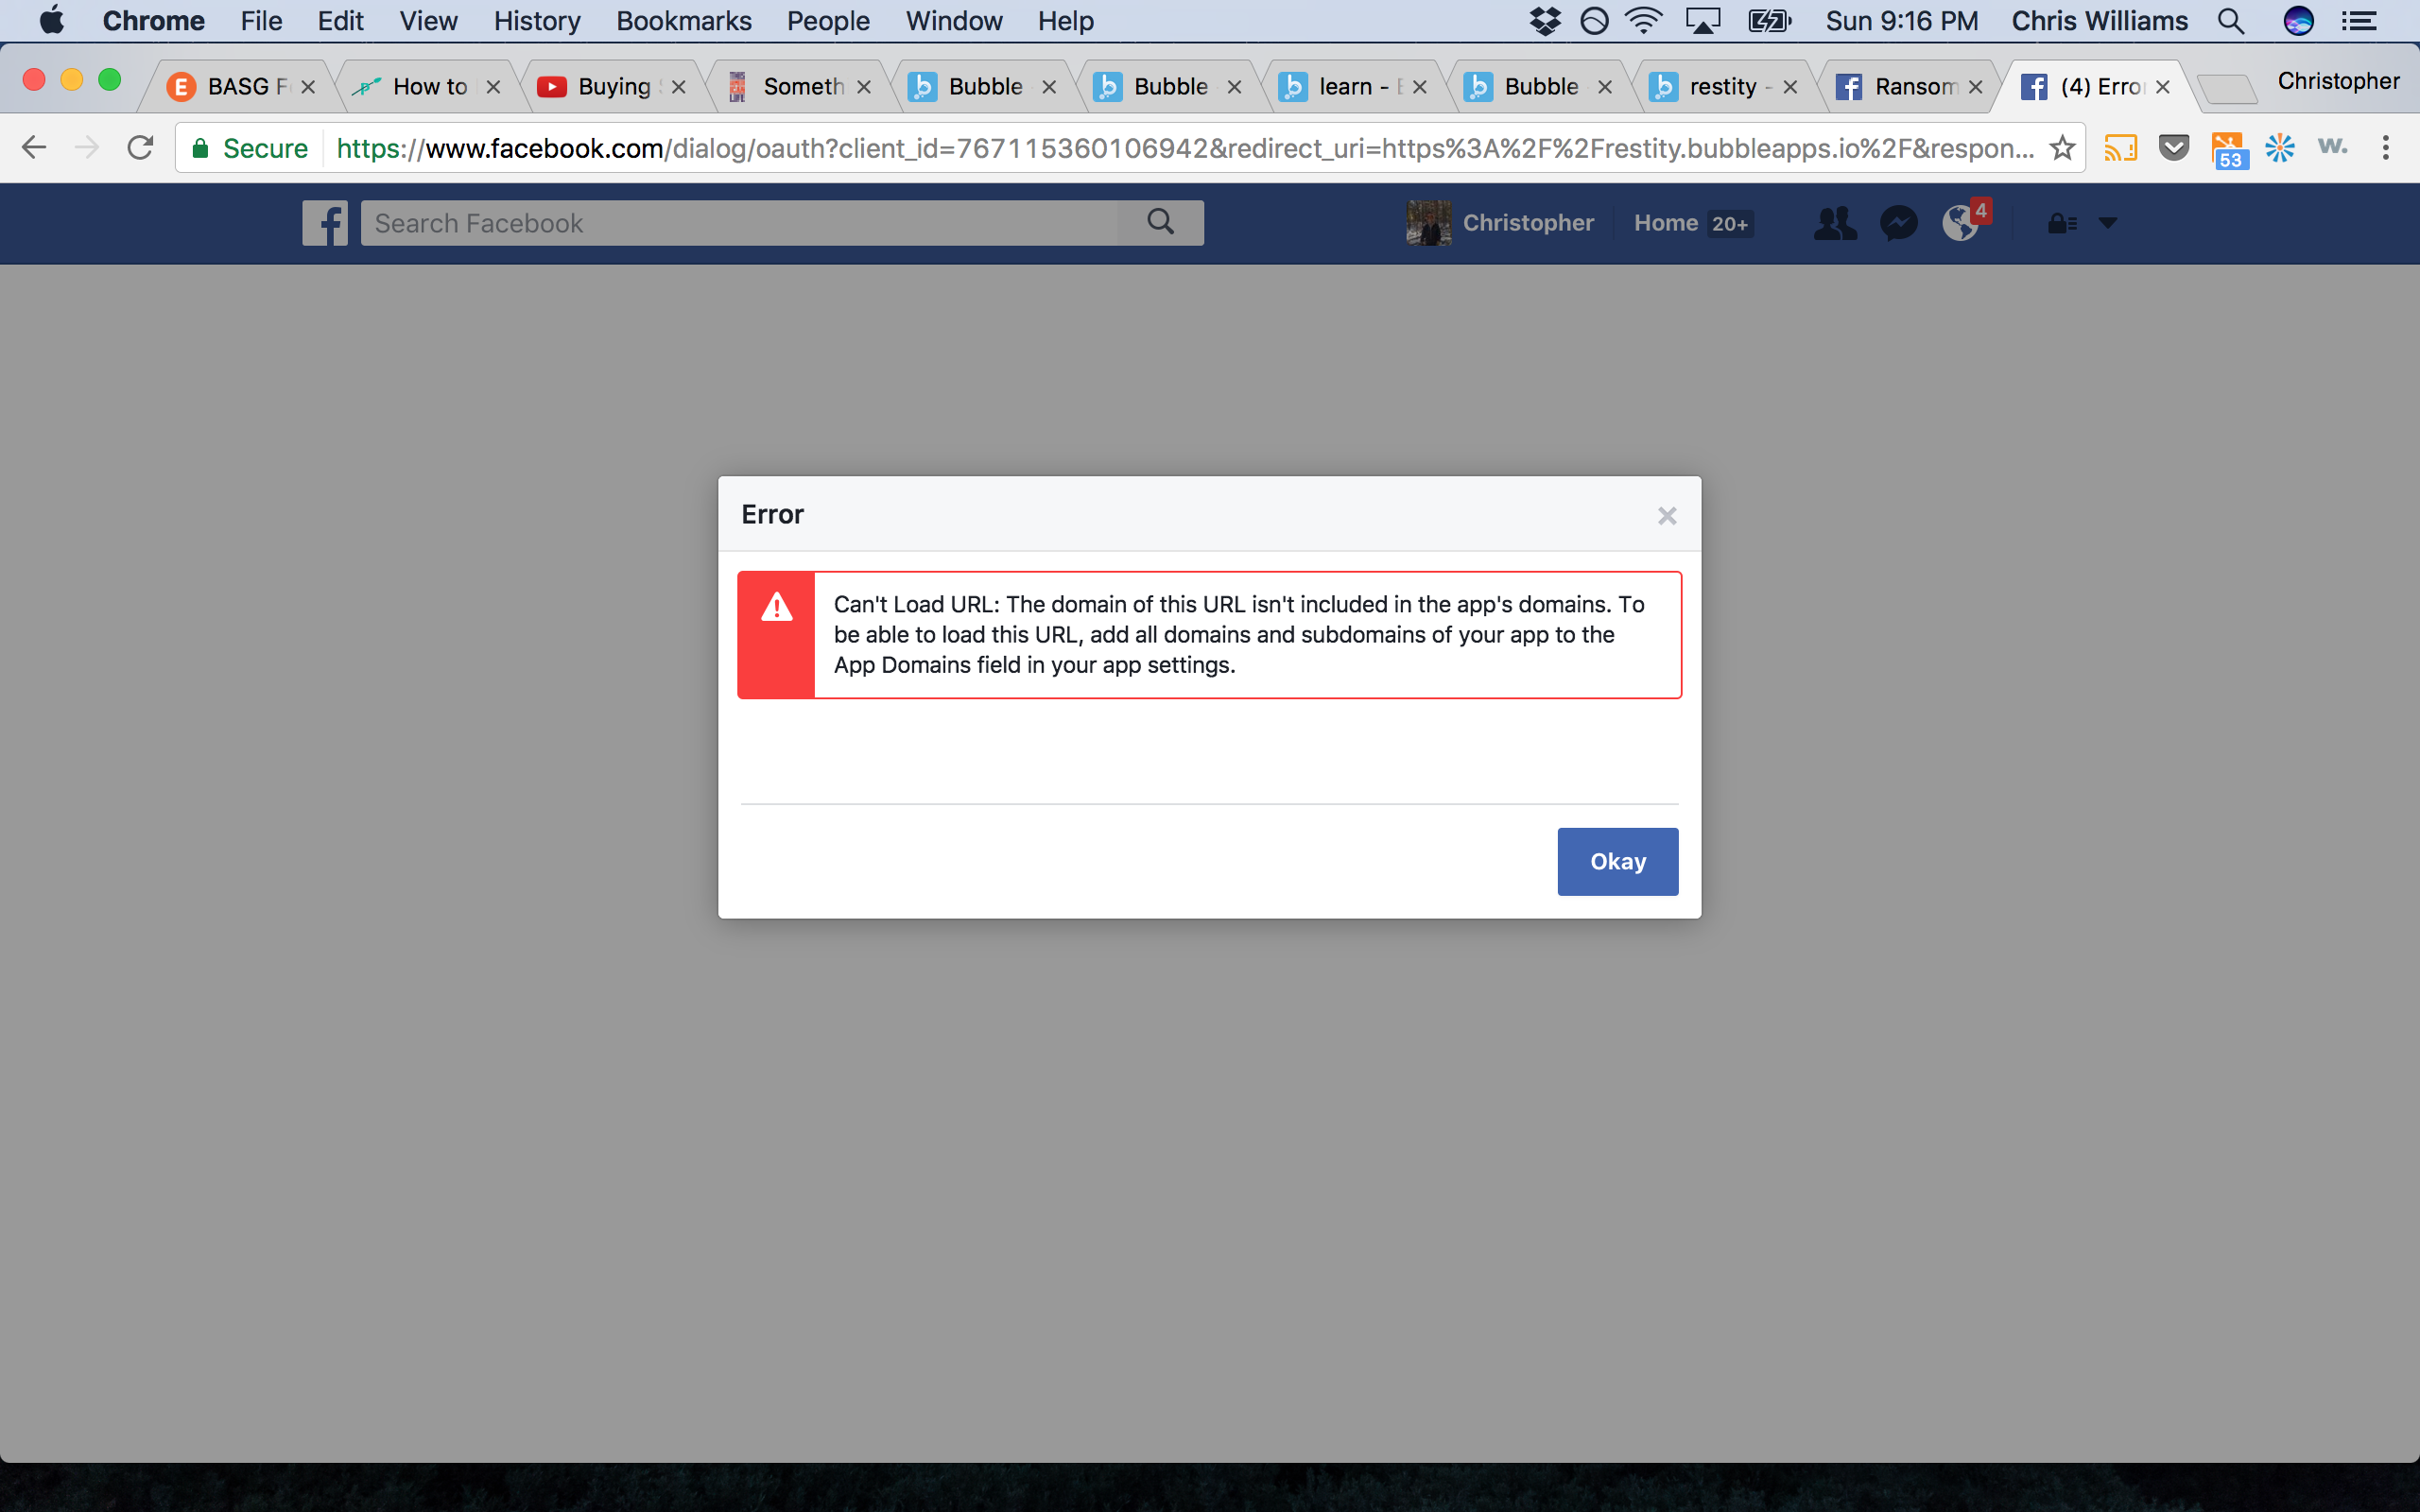 SOLVED] FB Login domain problem - Need help - Bubble Forum